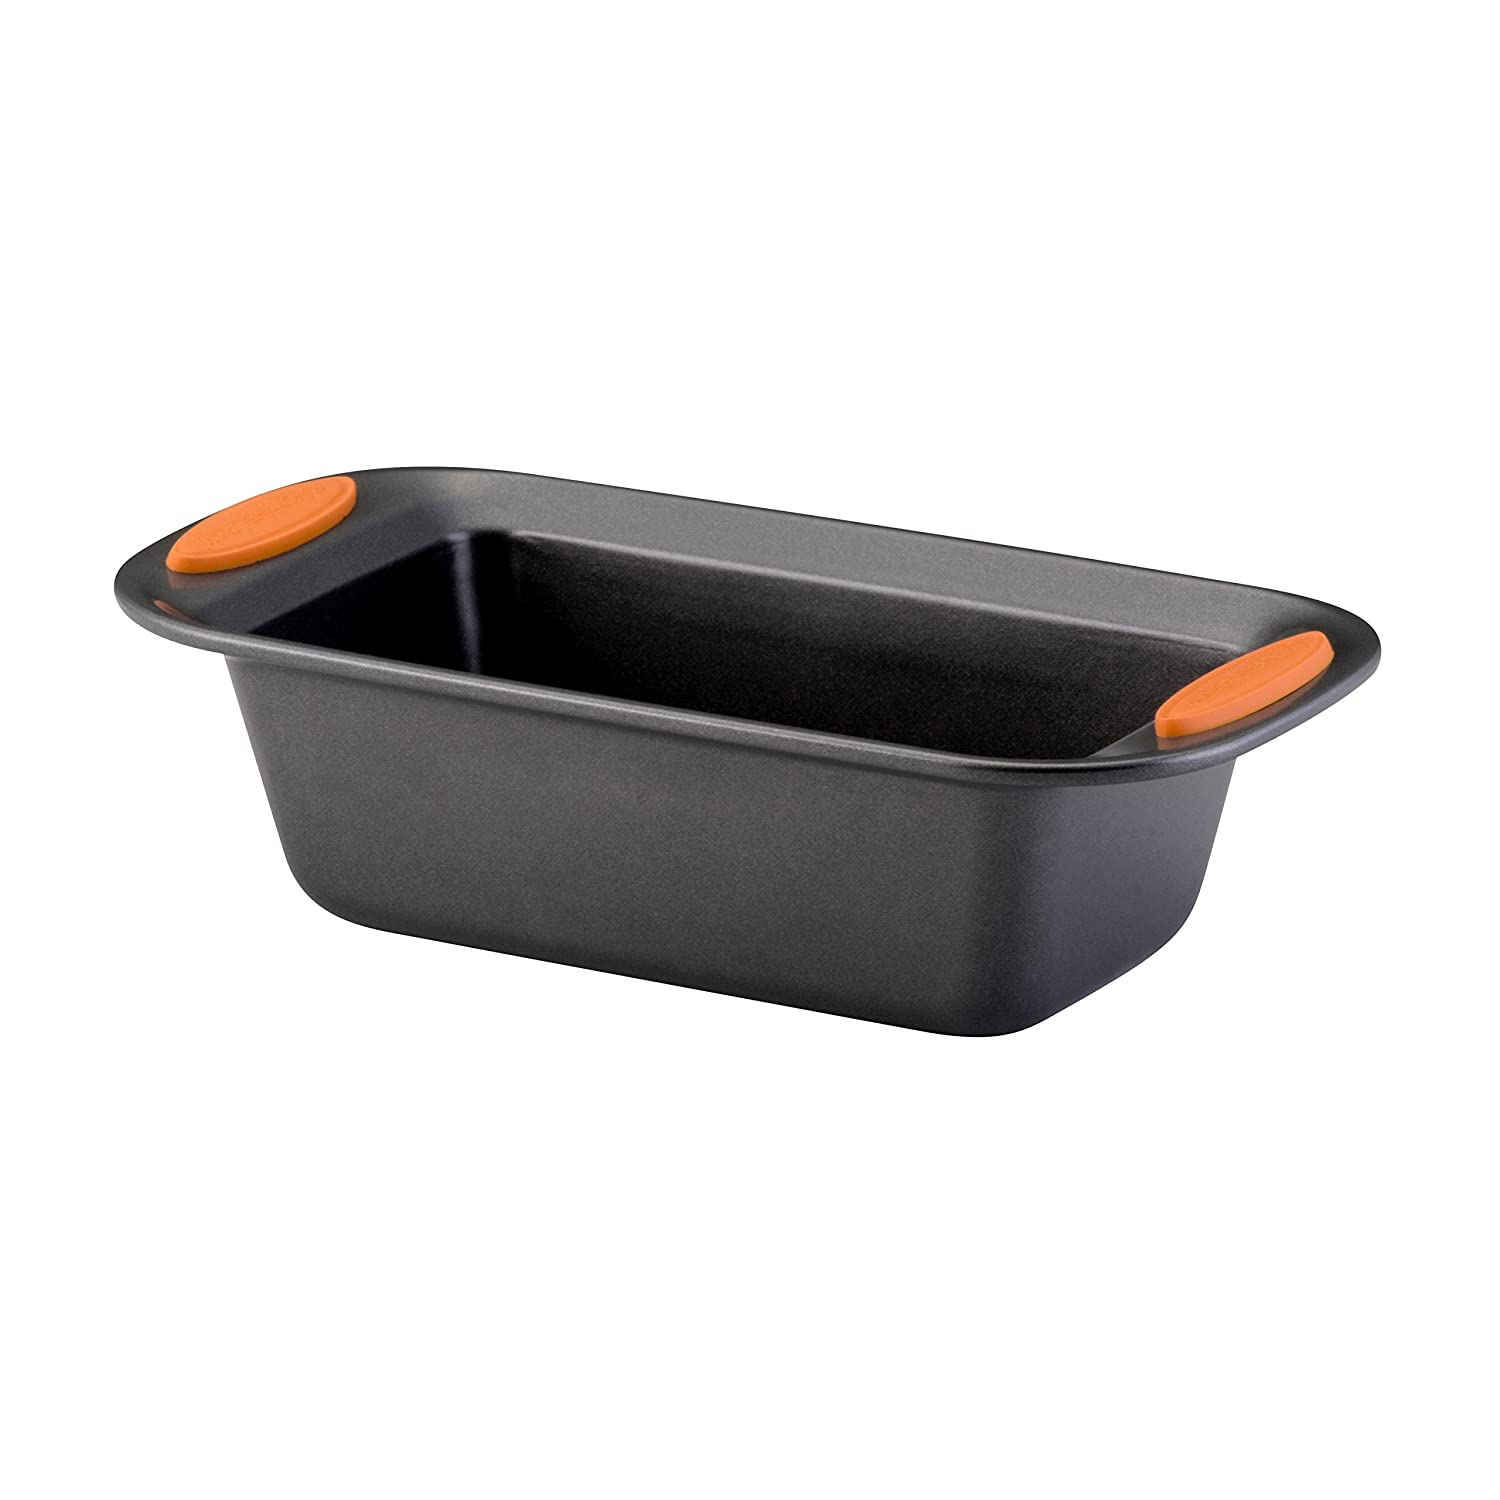 Rachael Ray Yum-o! Nonstick Bakeware 9-Inch by 5-Inch Oven Lovin' Loaf Pan, Gray with Orange Handles